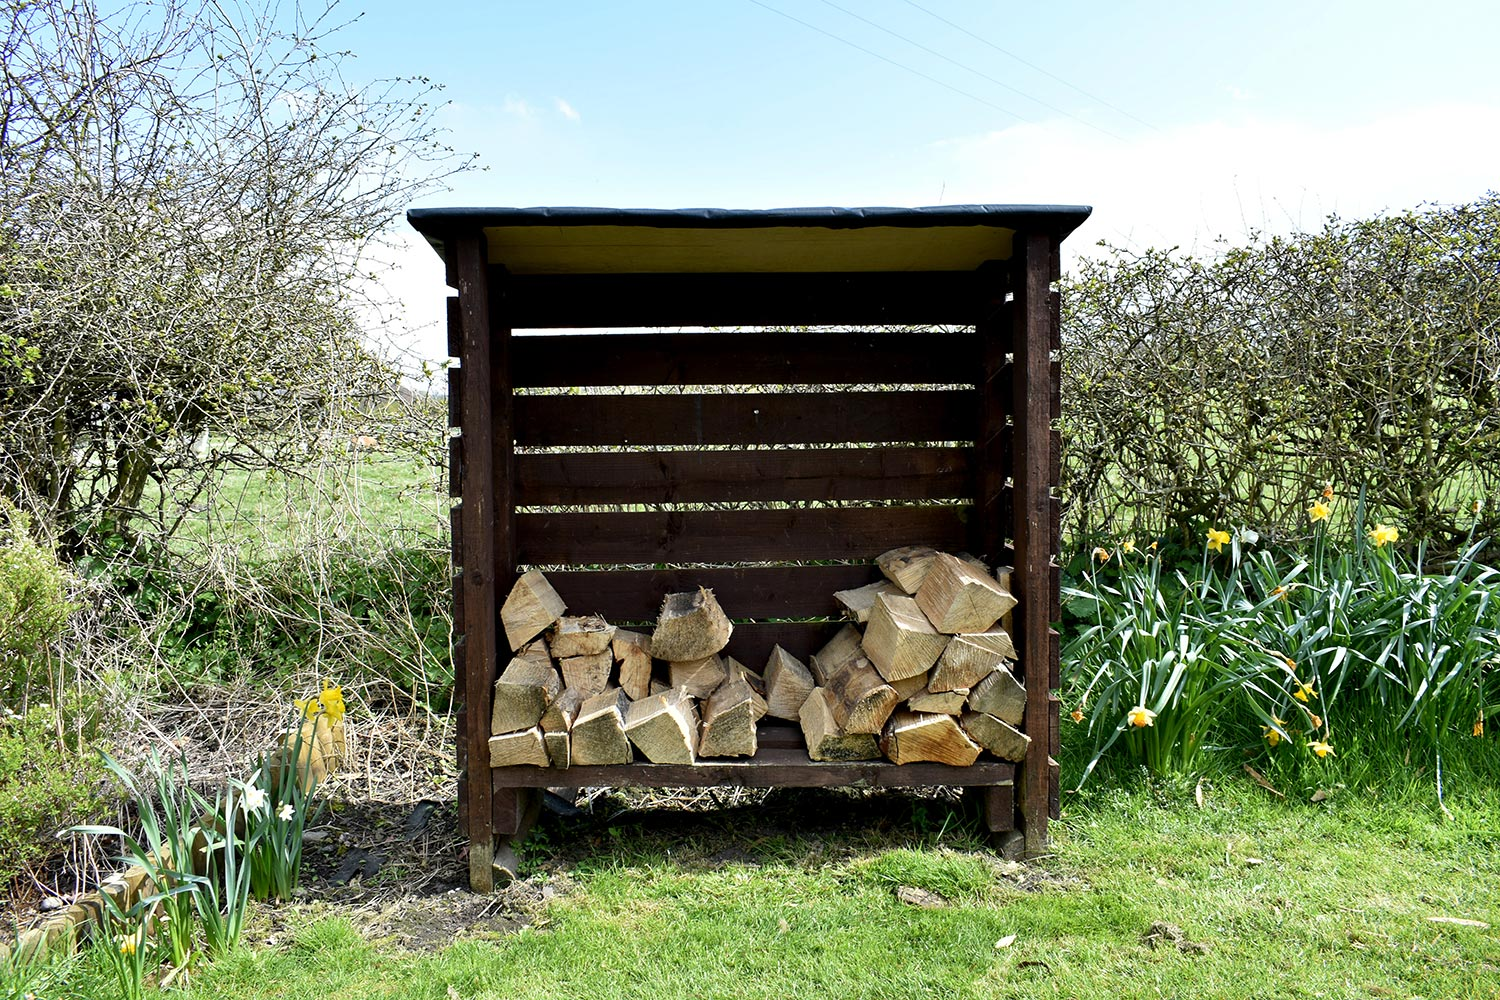 Close up of wooden slated storage box containing cut logs